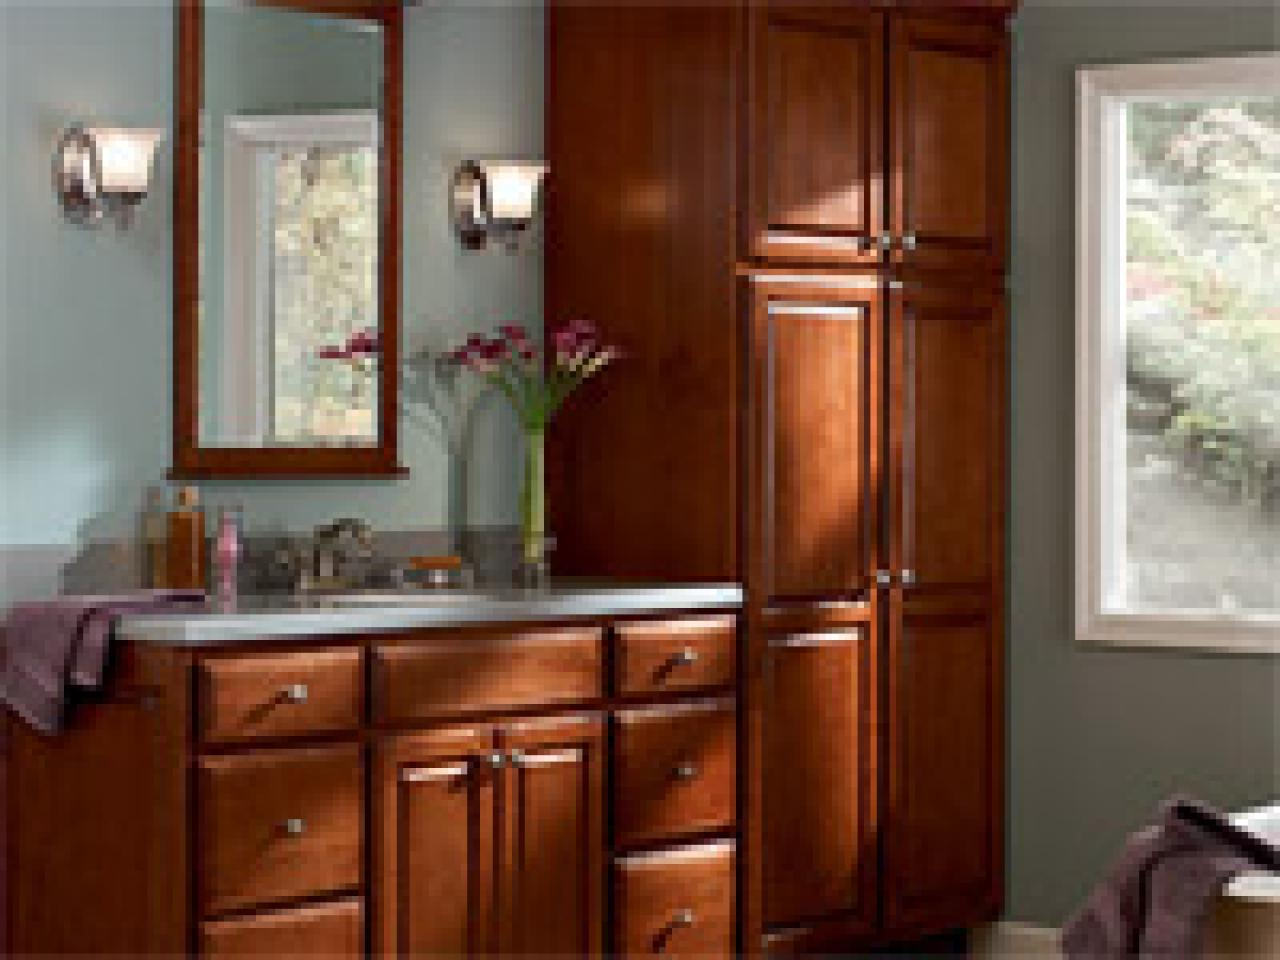 Guide to selecting bathroom cabinets hgtv for Bathroom furniture design ideas